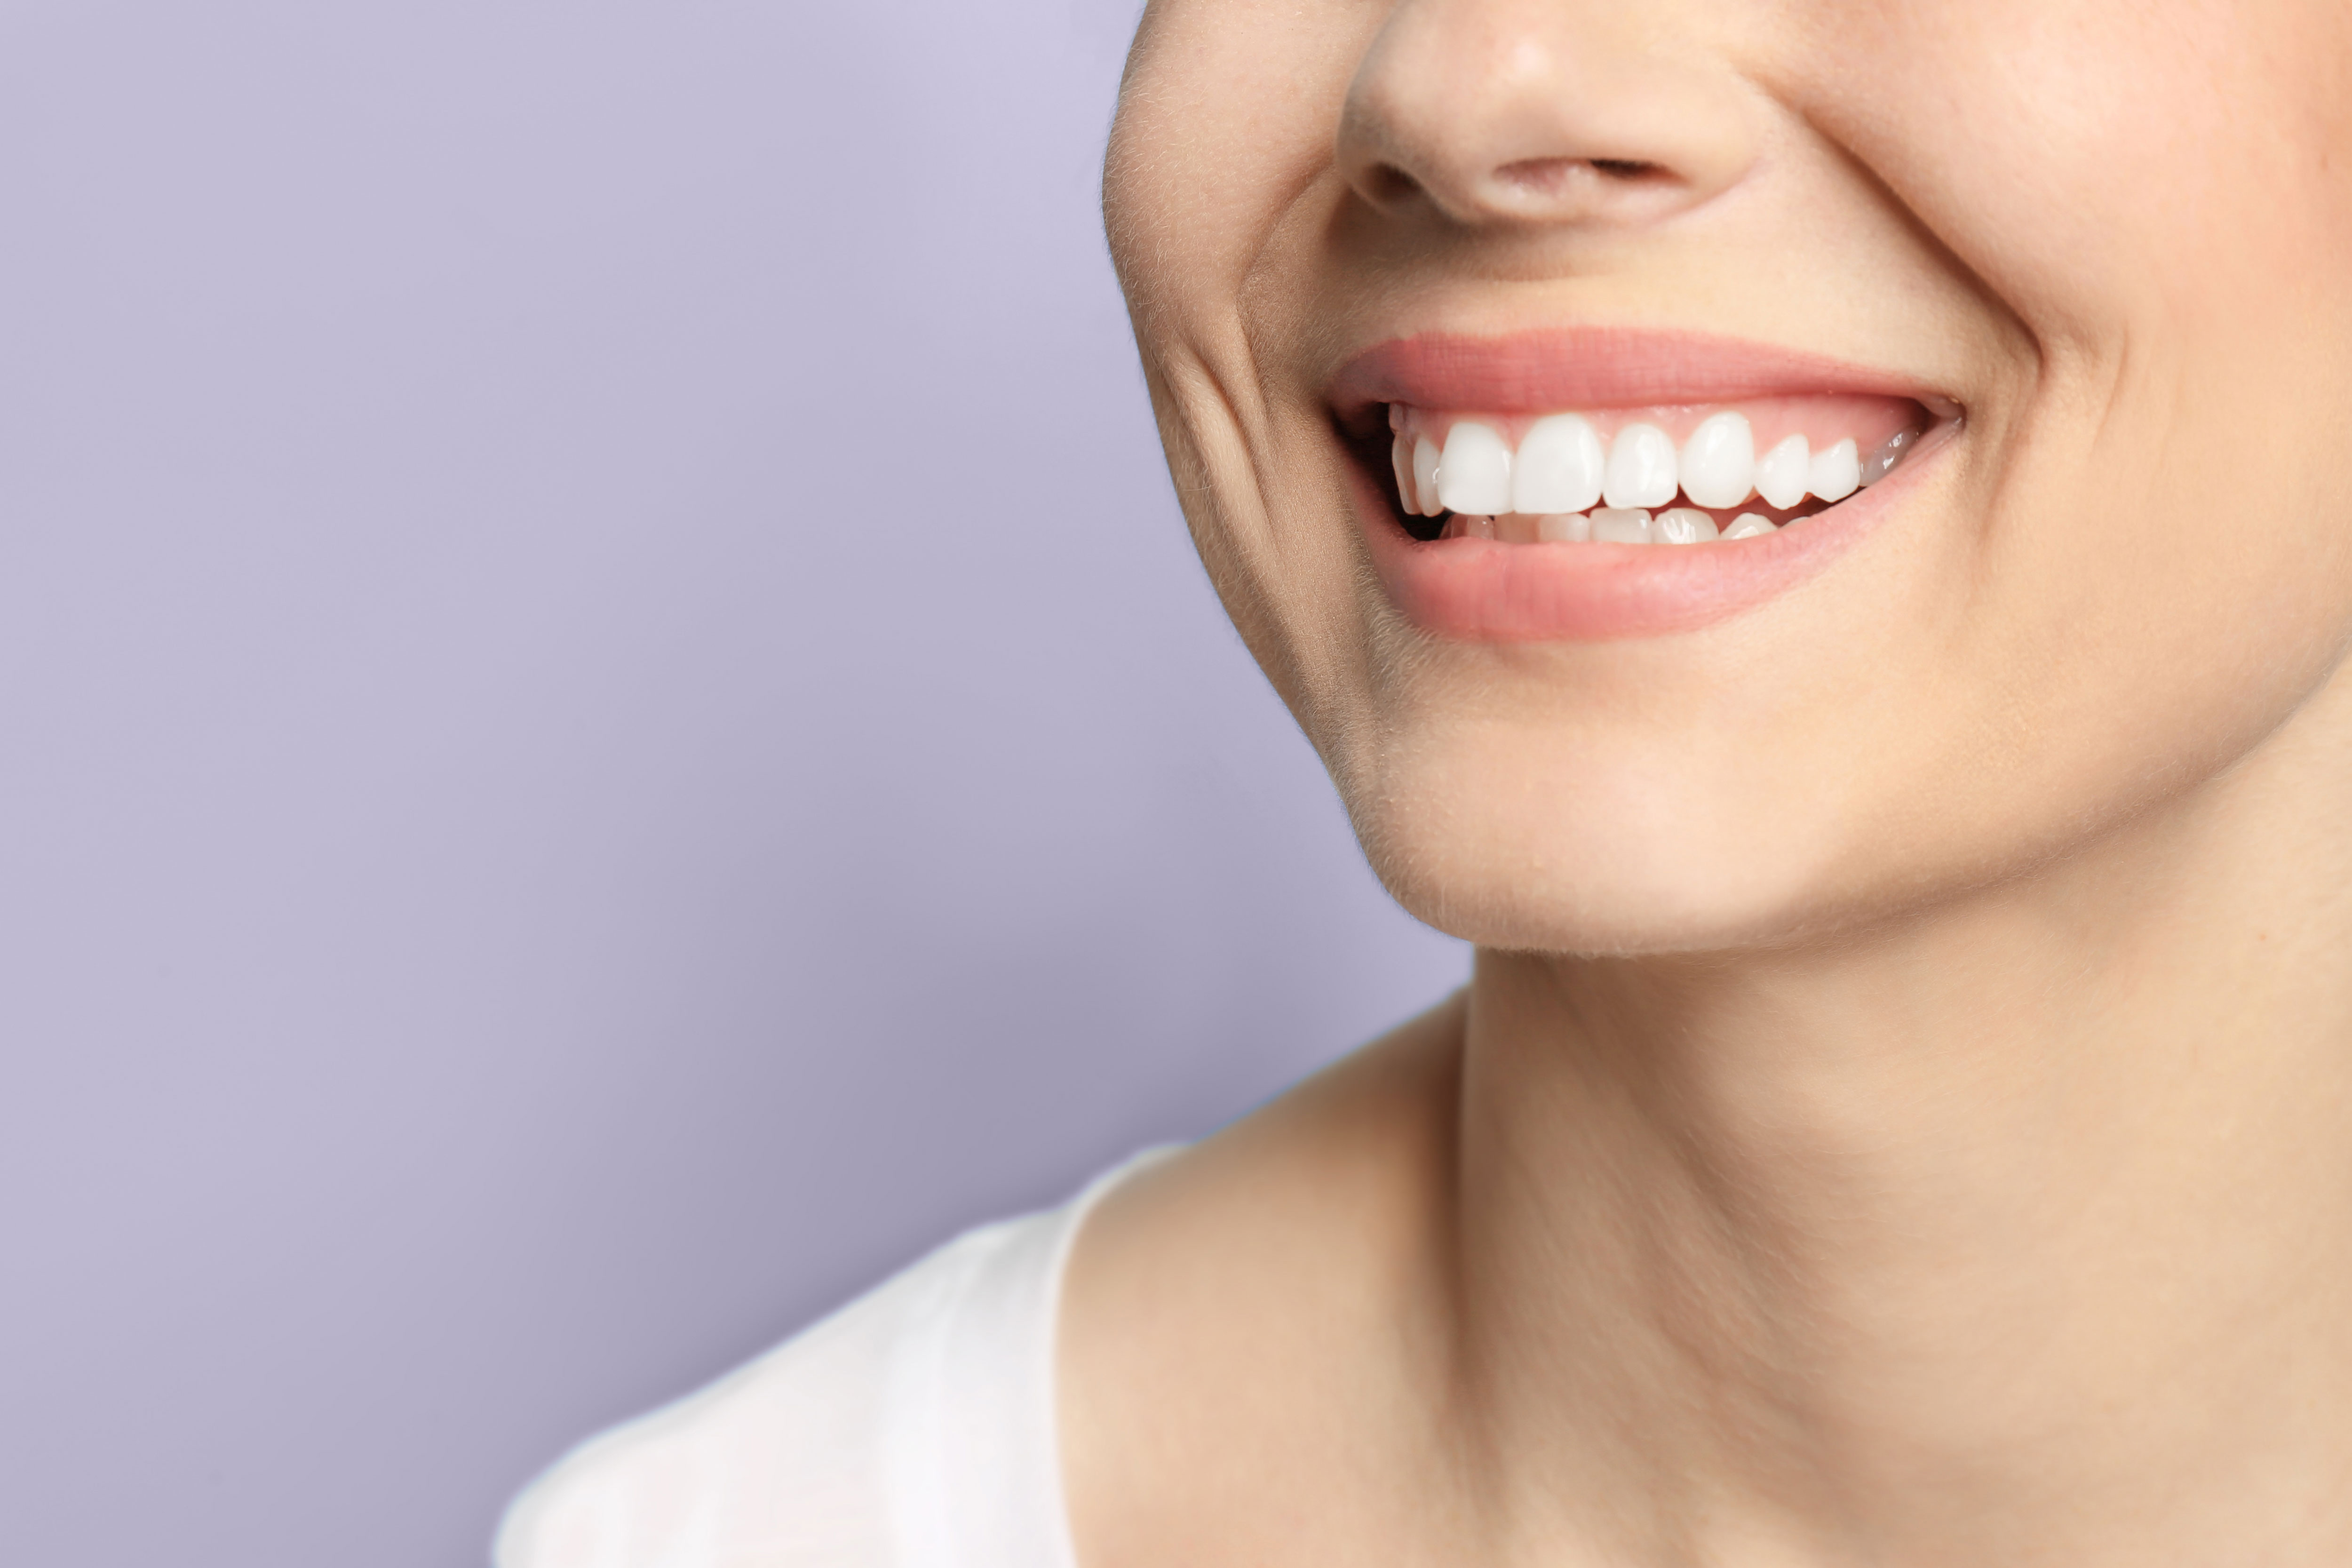 What are the options for getting straighter teeth?